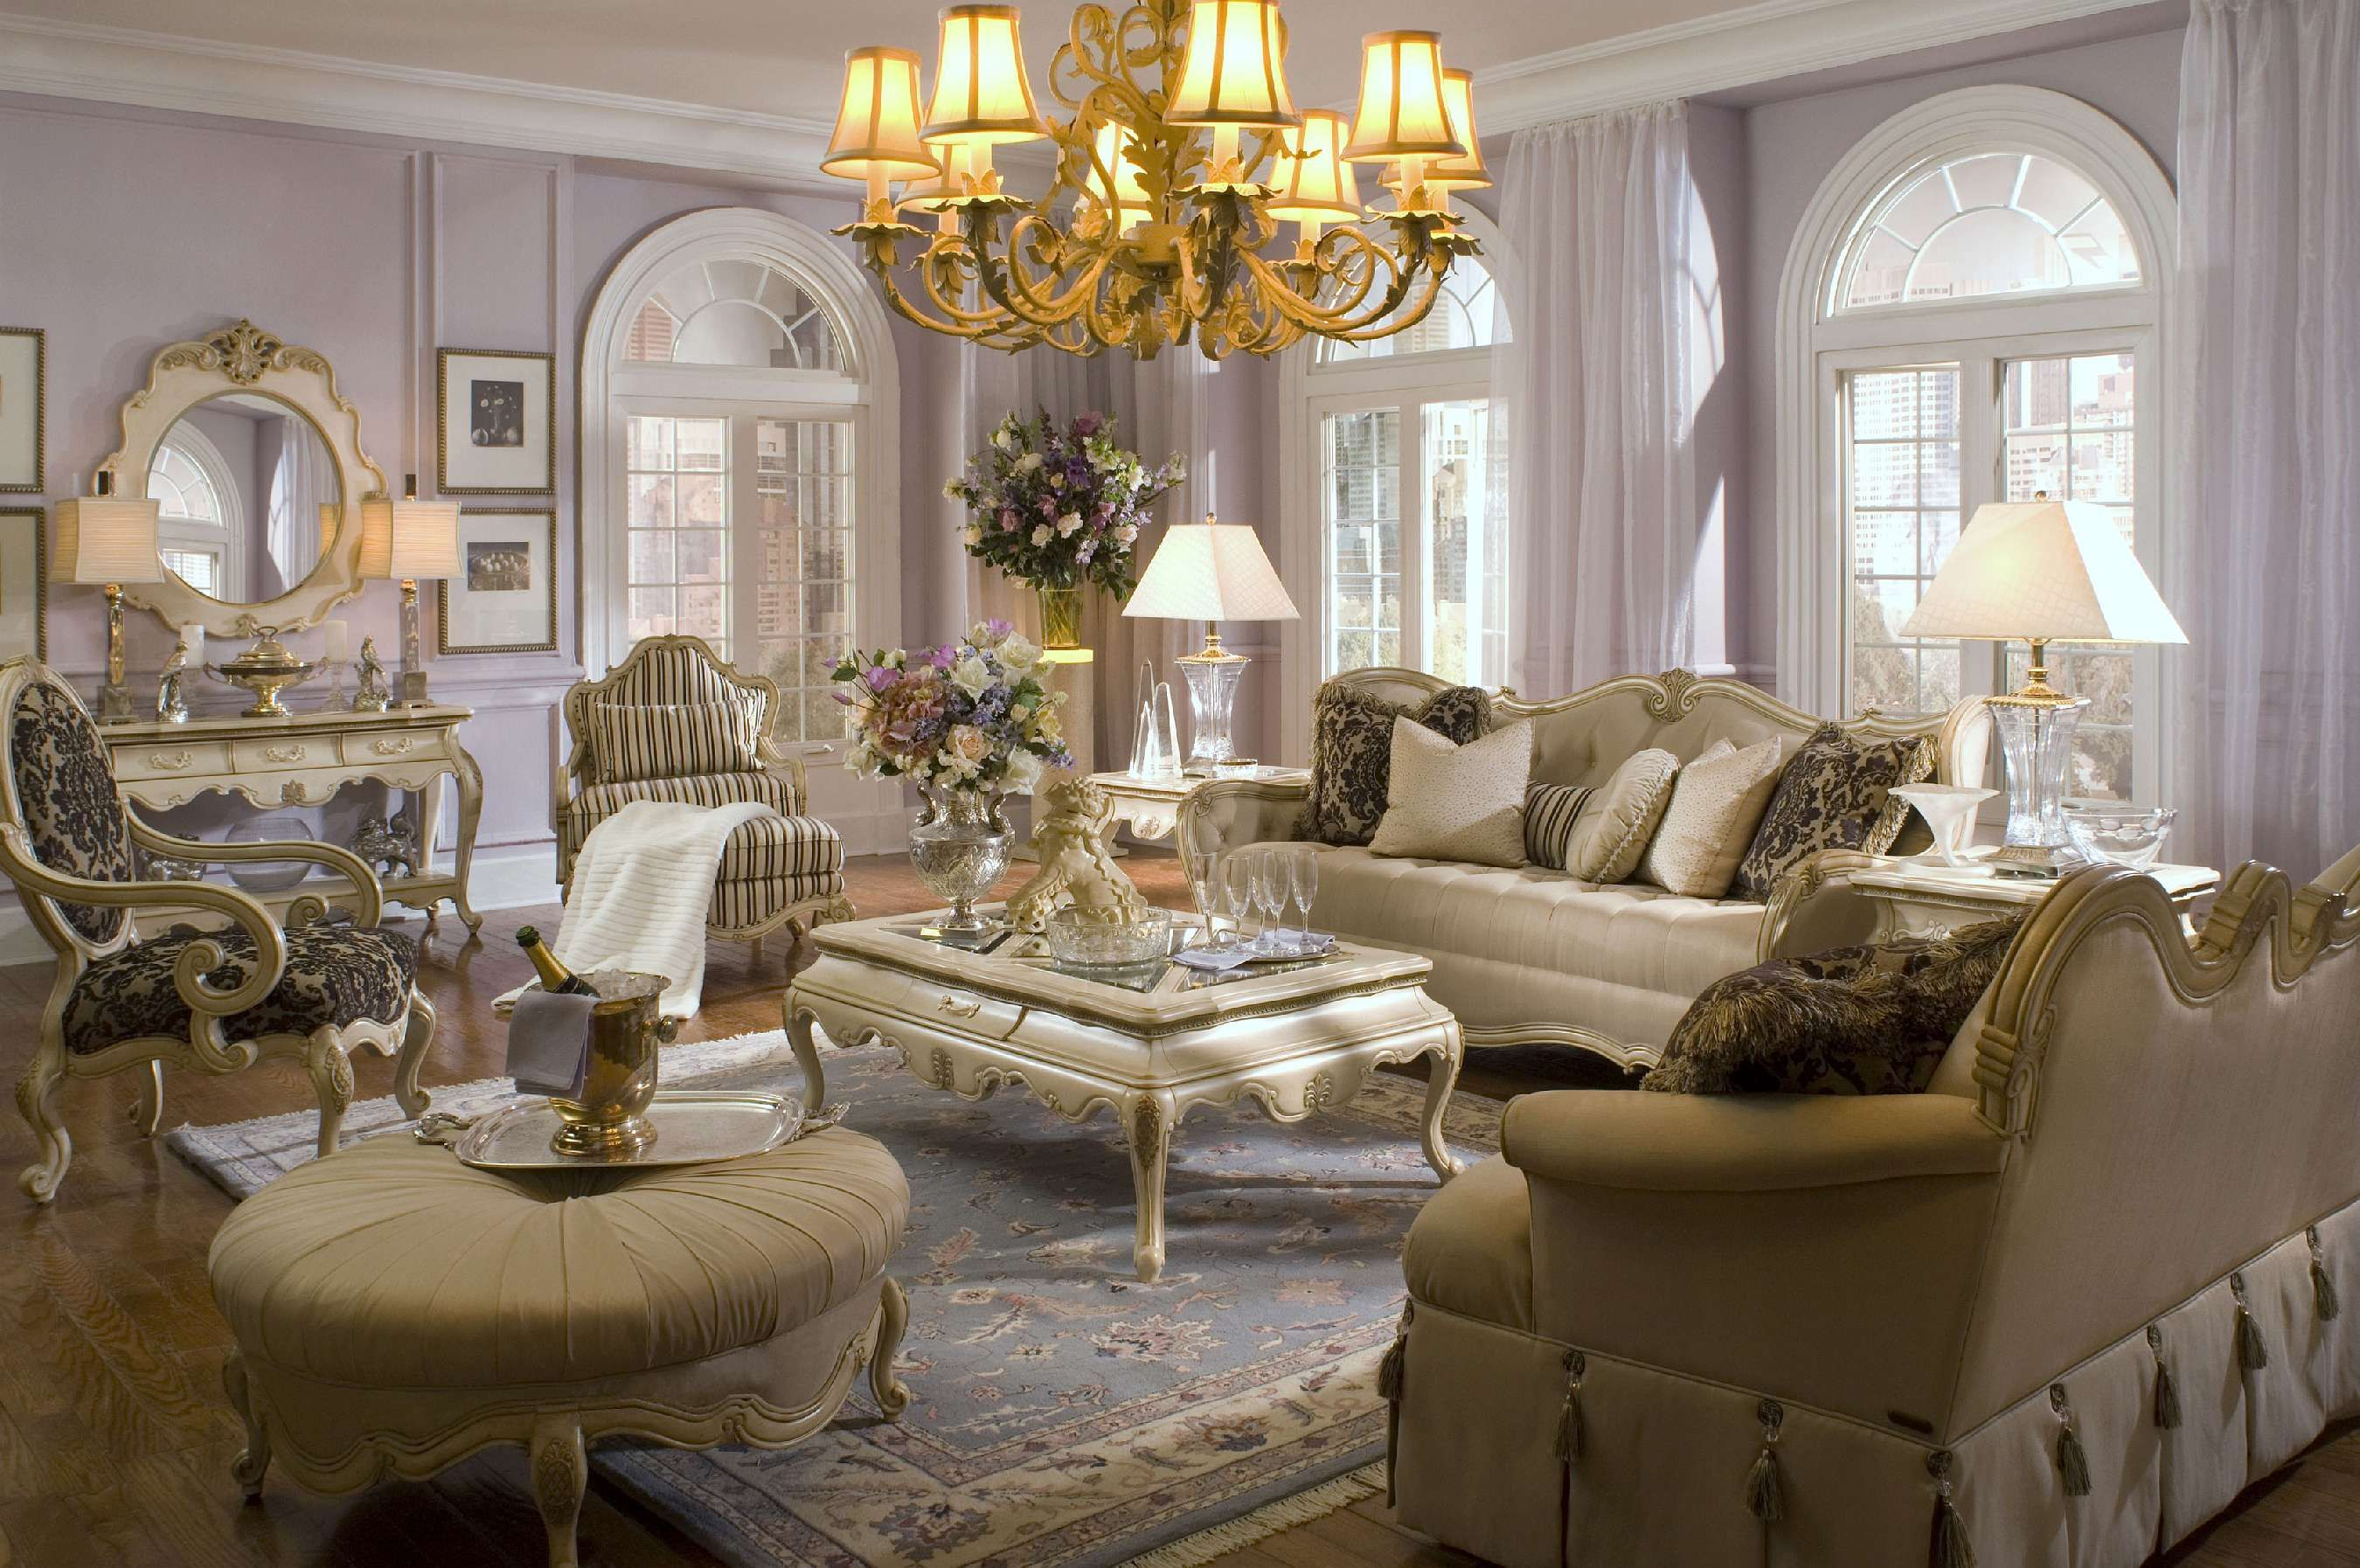 Luxury Rooms With Lighting Golden Details1 Min Read